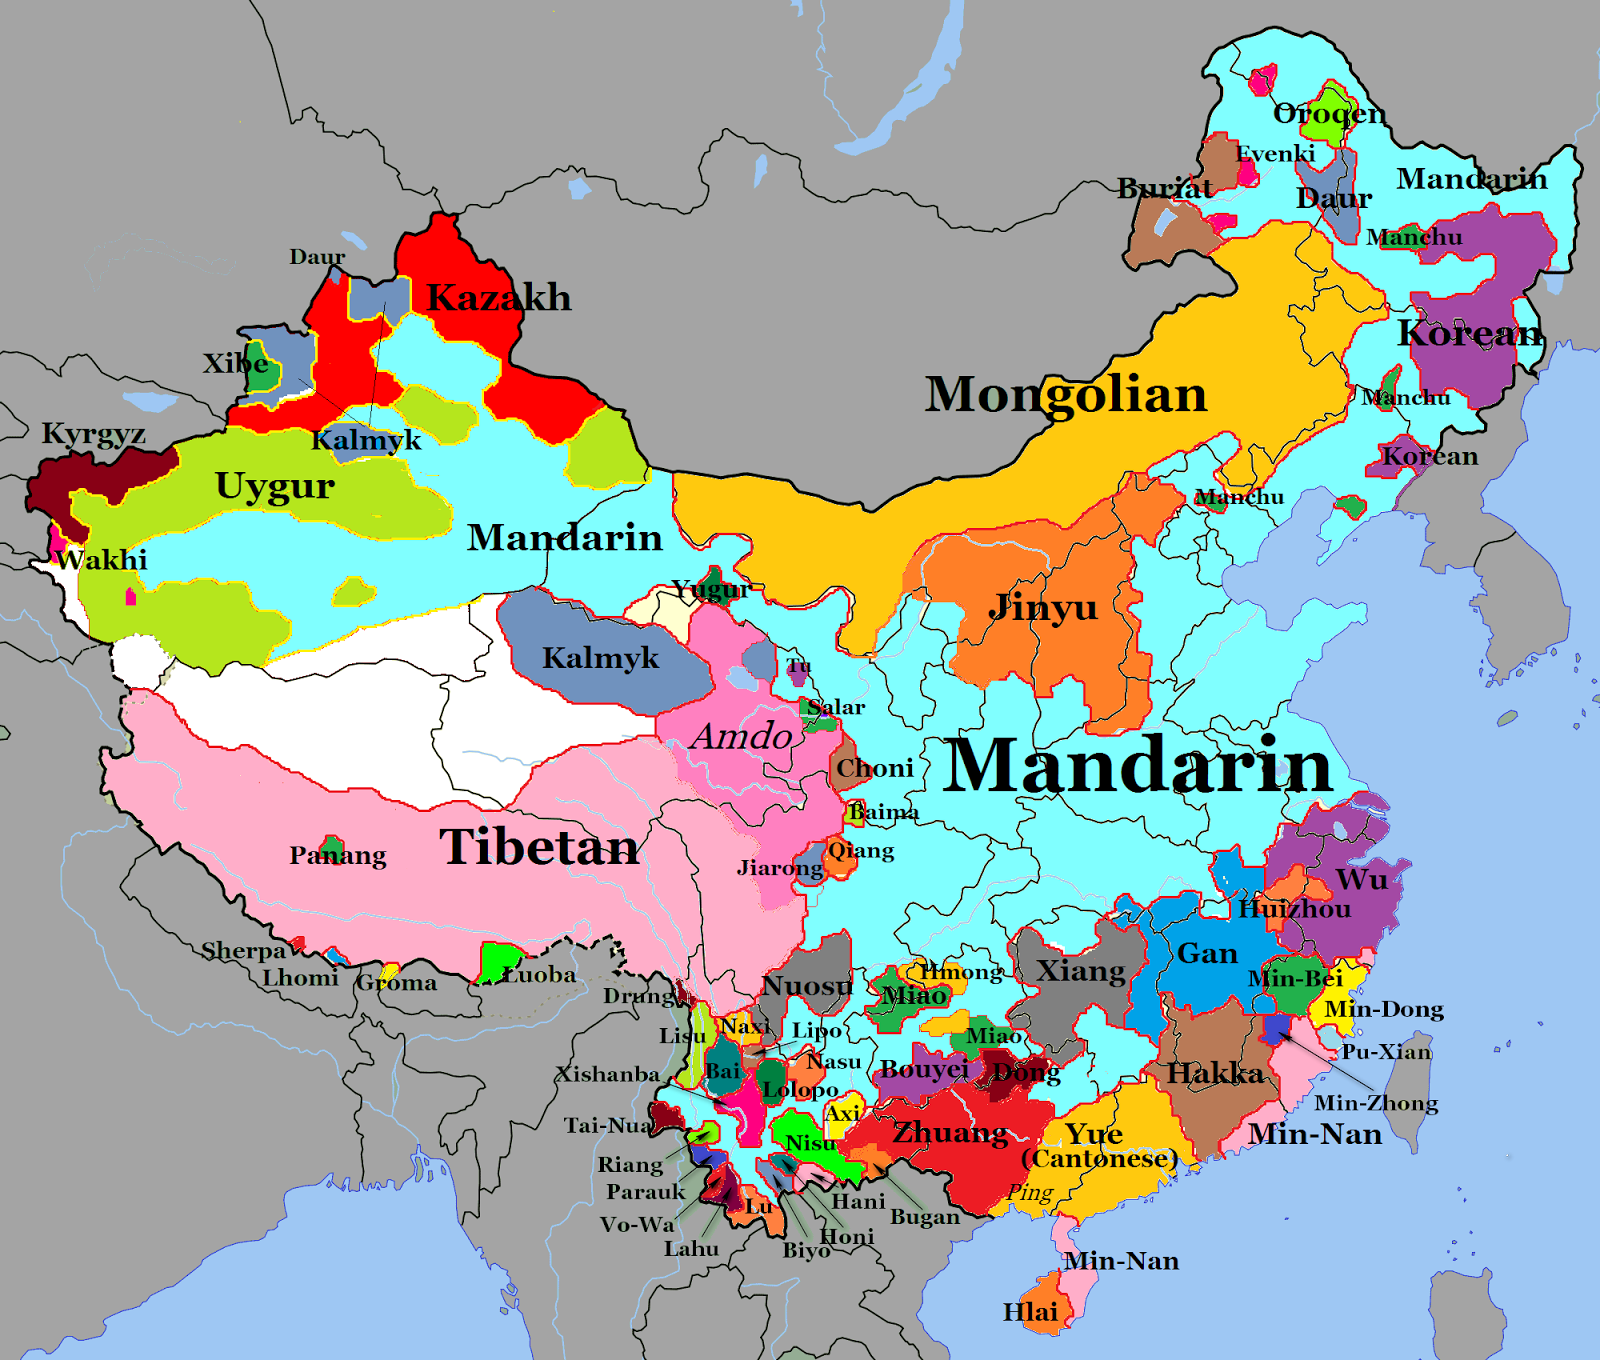 Map of languages spoken in China | China | China map, China ...